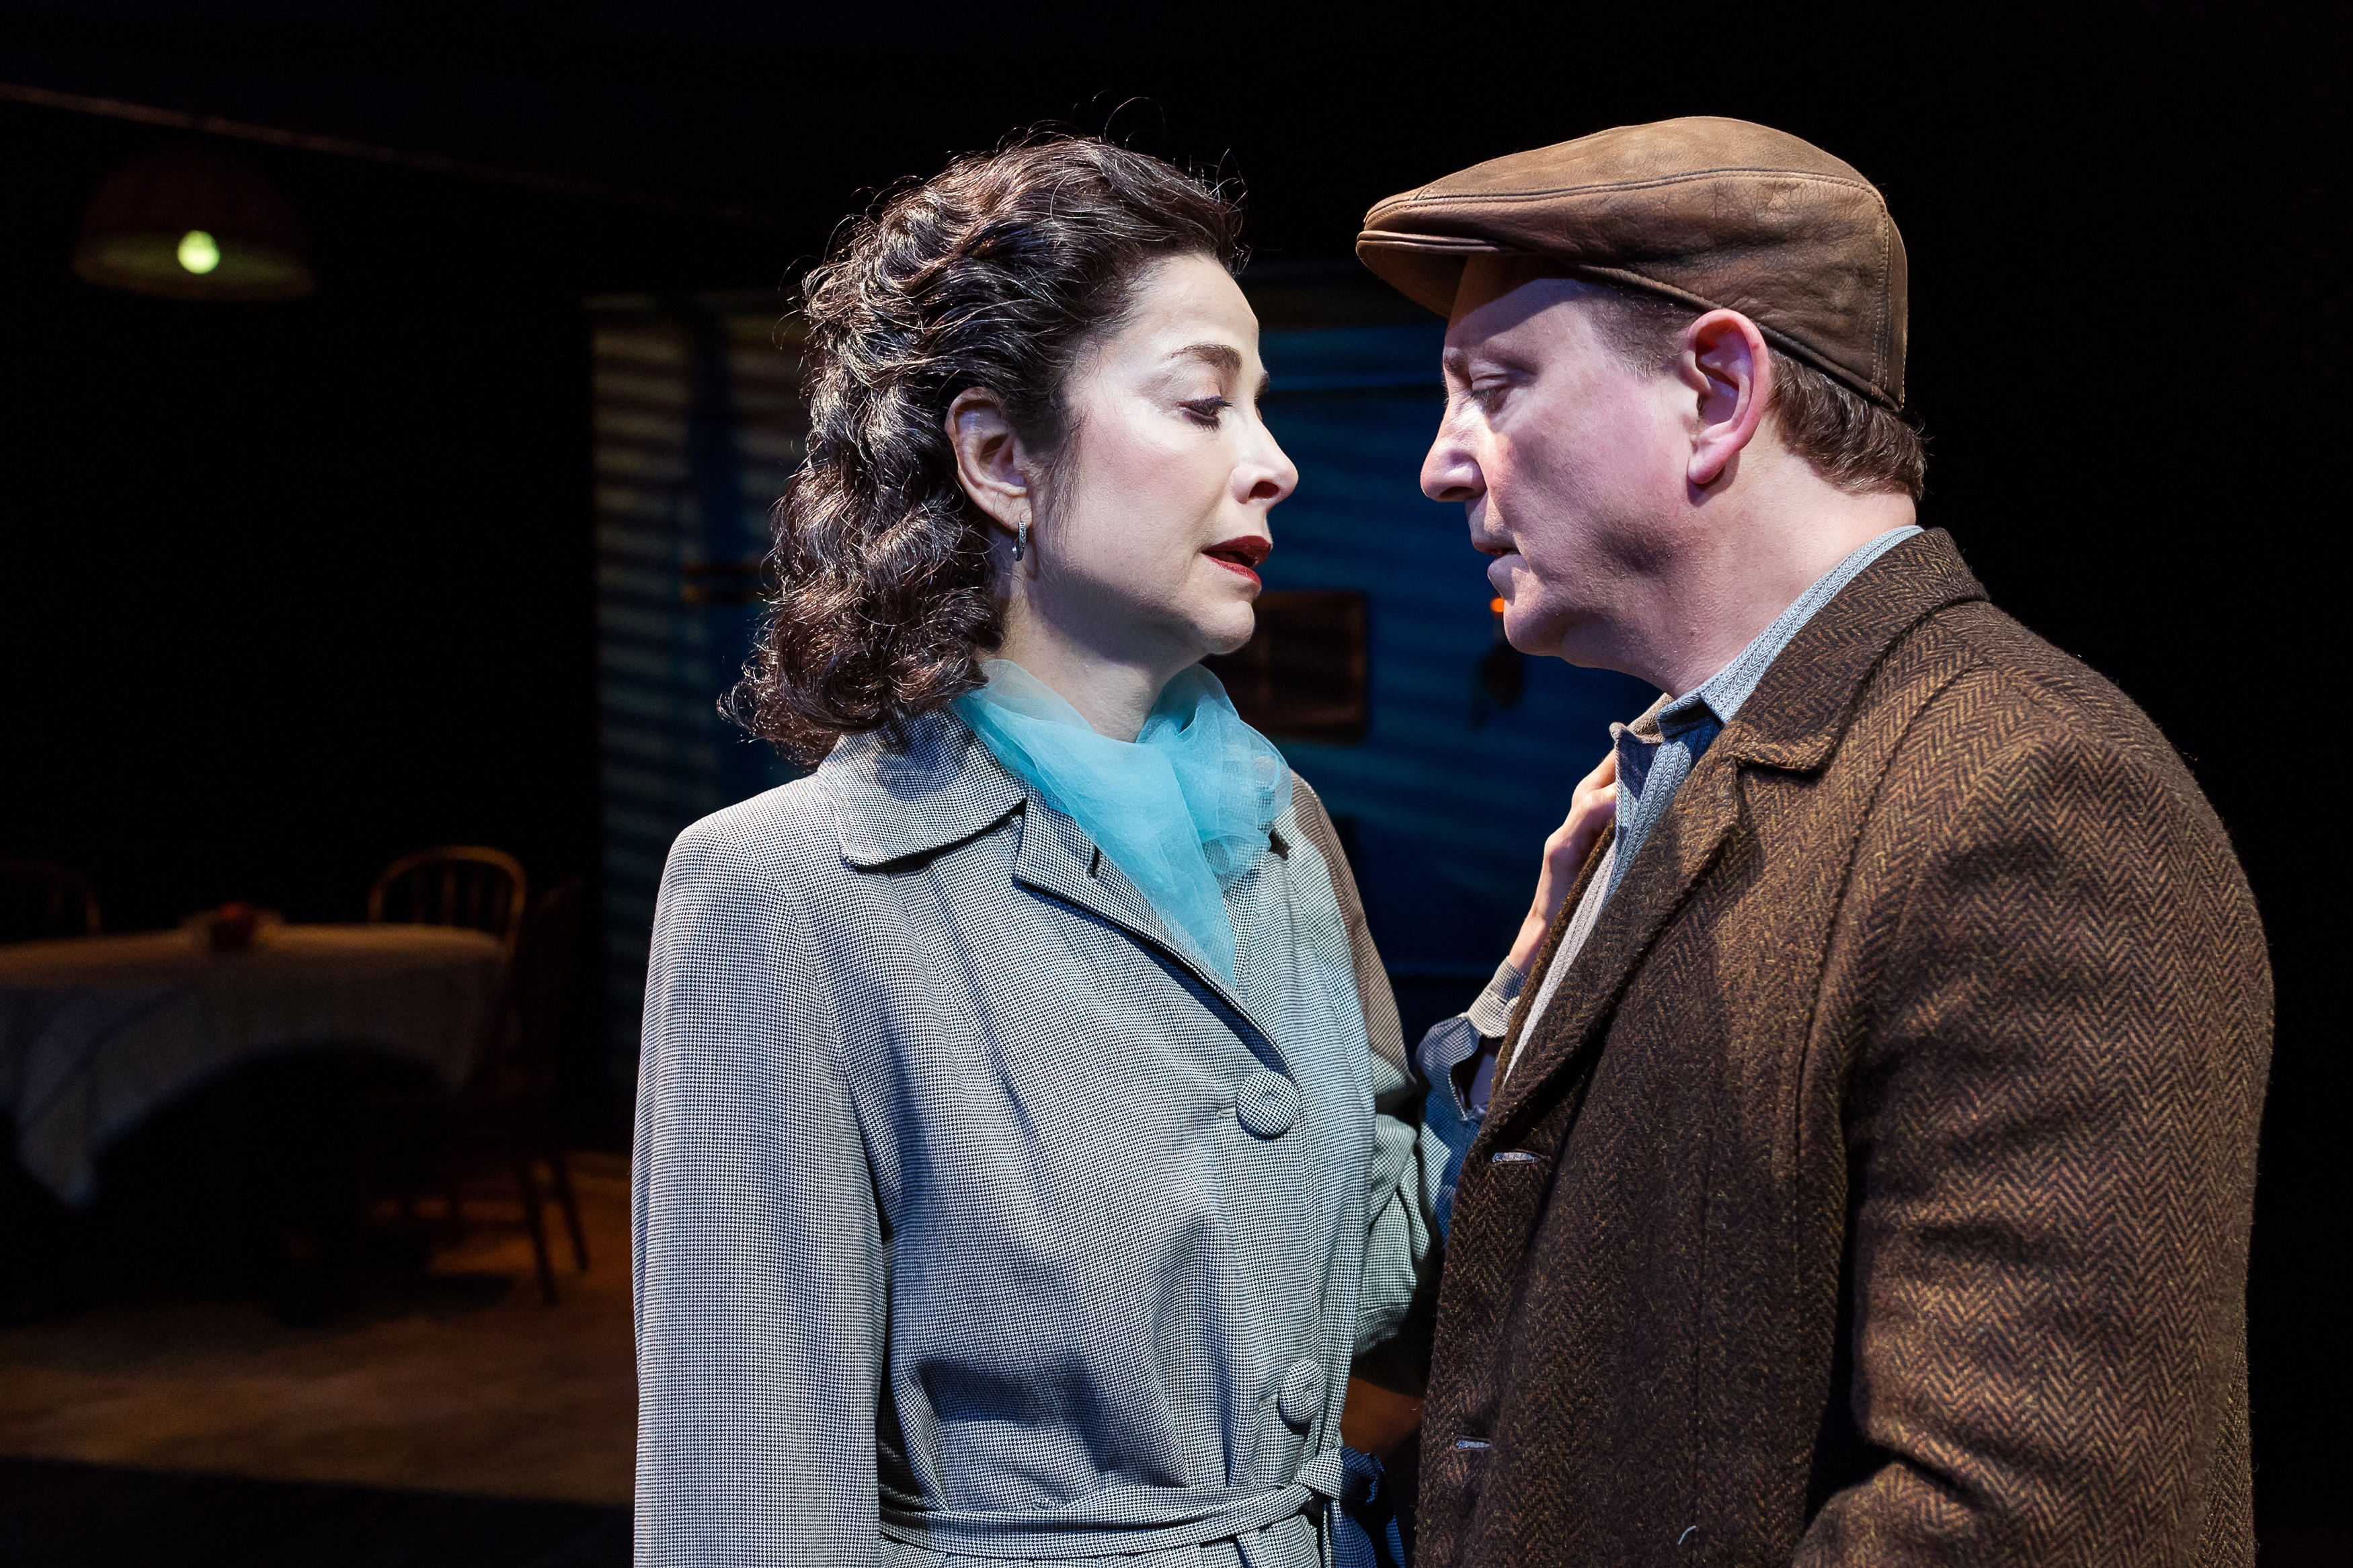 Josie De Guzman As Beatrice And Mark Zeisler Eddie In The Alley Theatres Production Of A View From Bridge By Arthur Miller